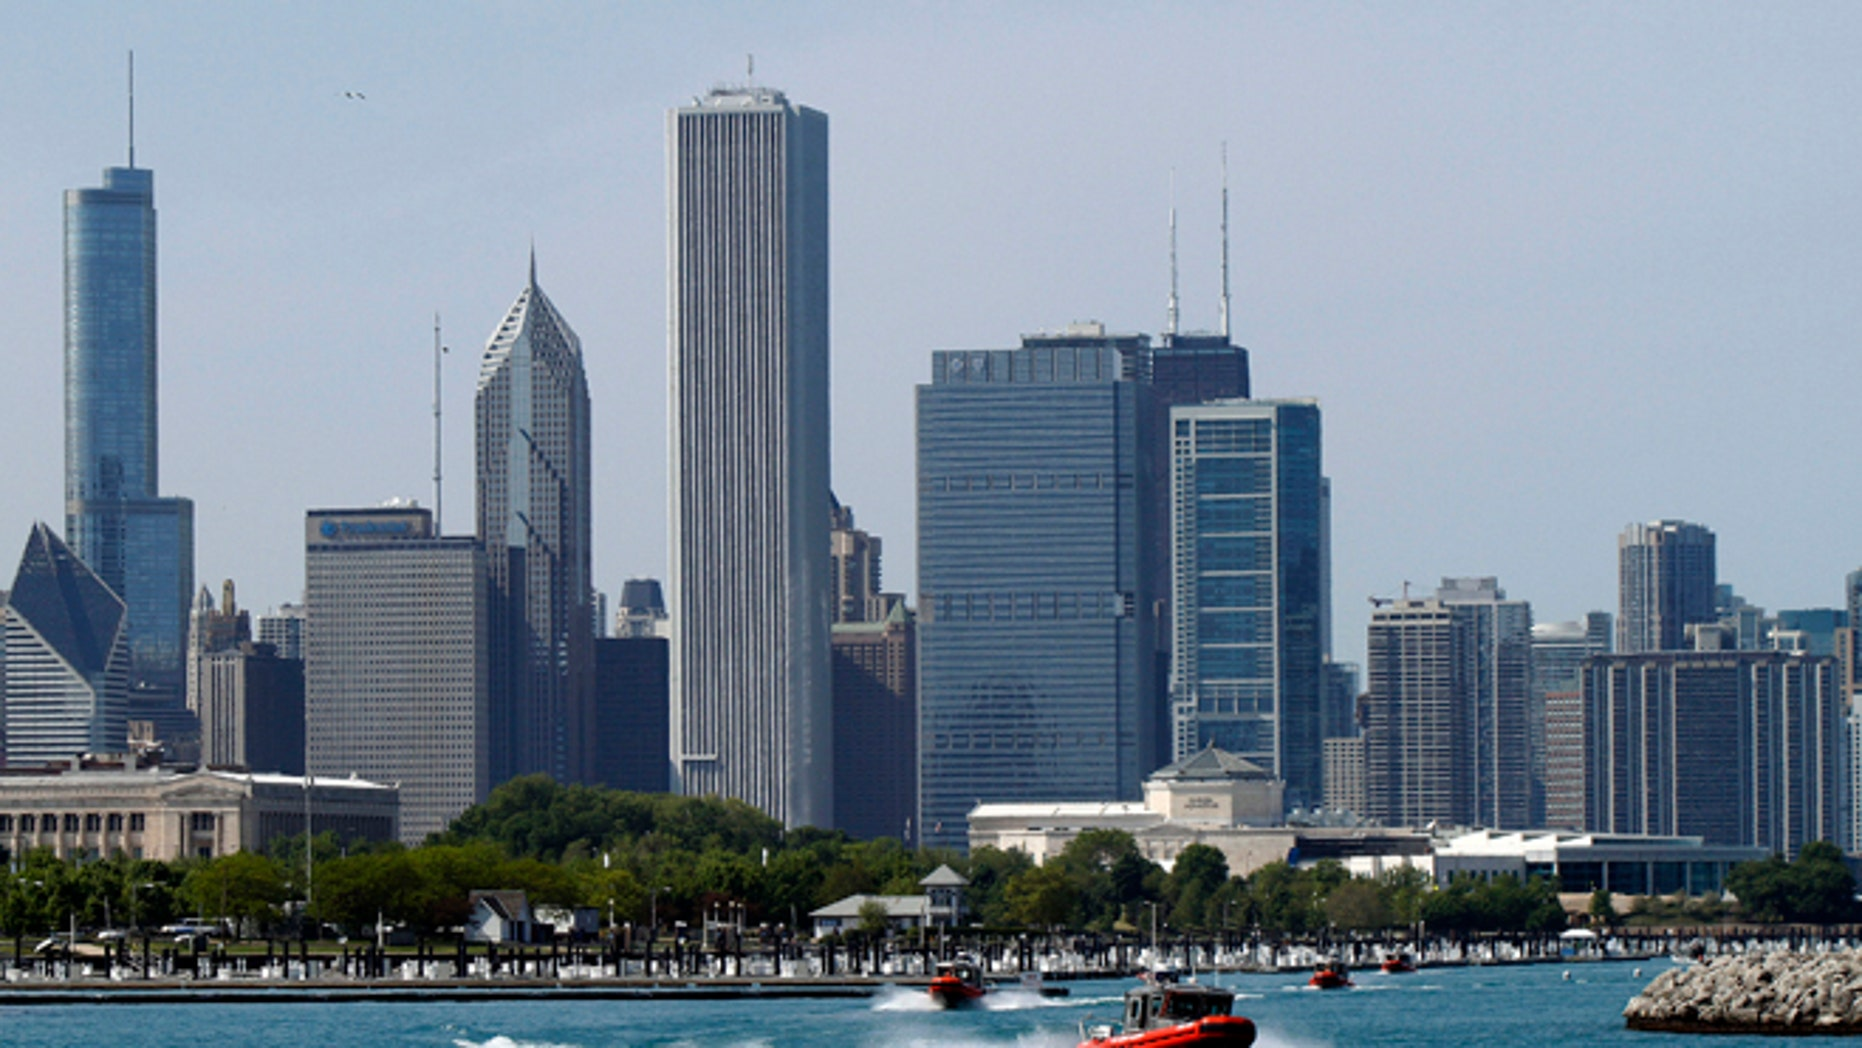 FILE: May 17, 2012: Chicago's skyline is seen as U.S. Coast Guard boats leave Burnham harbor on Lake Michigan, near McCormick Place, in Illinois.